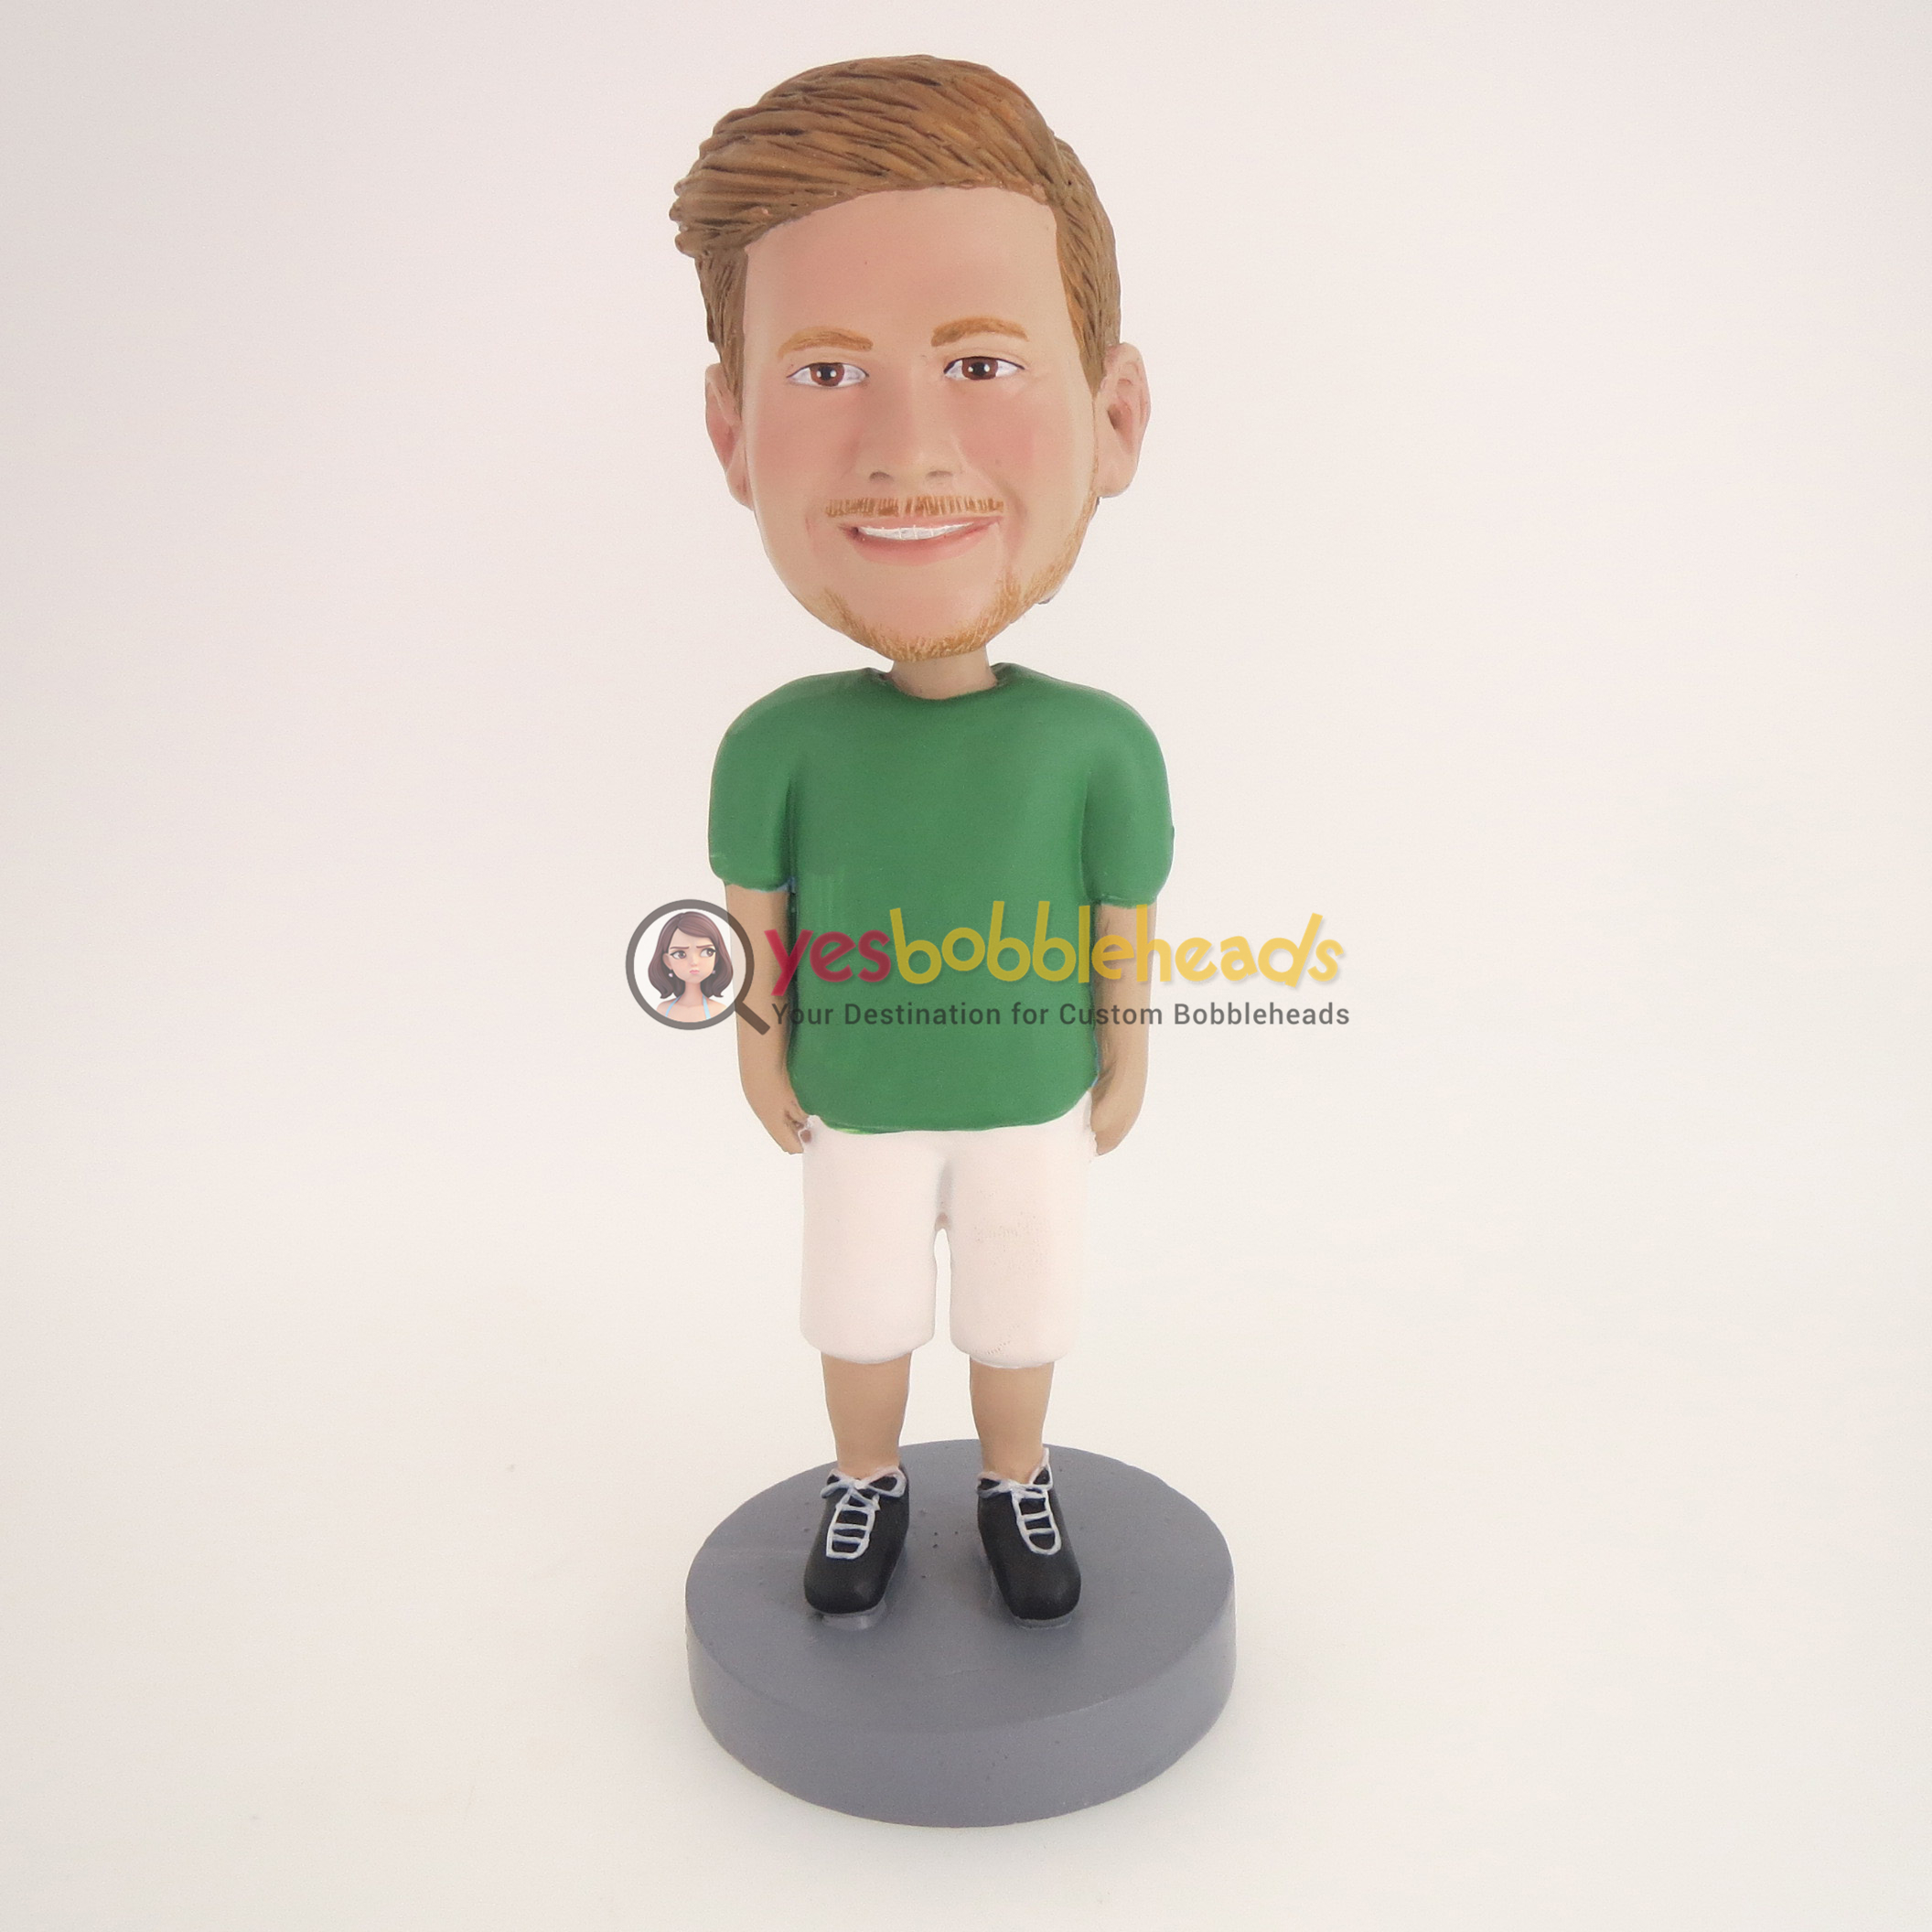 Picture of Custom Bobblehead Doll: Casual Man Ready To Go